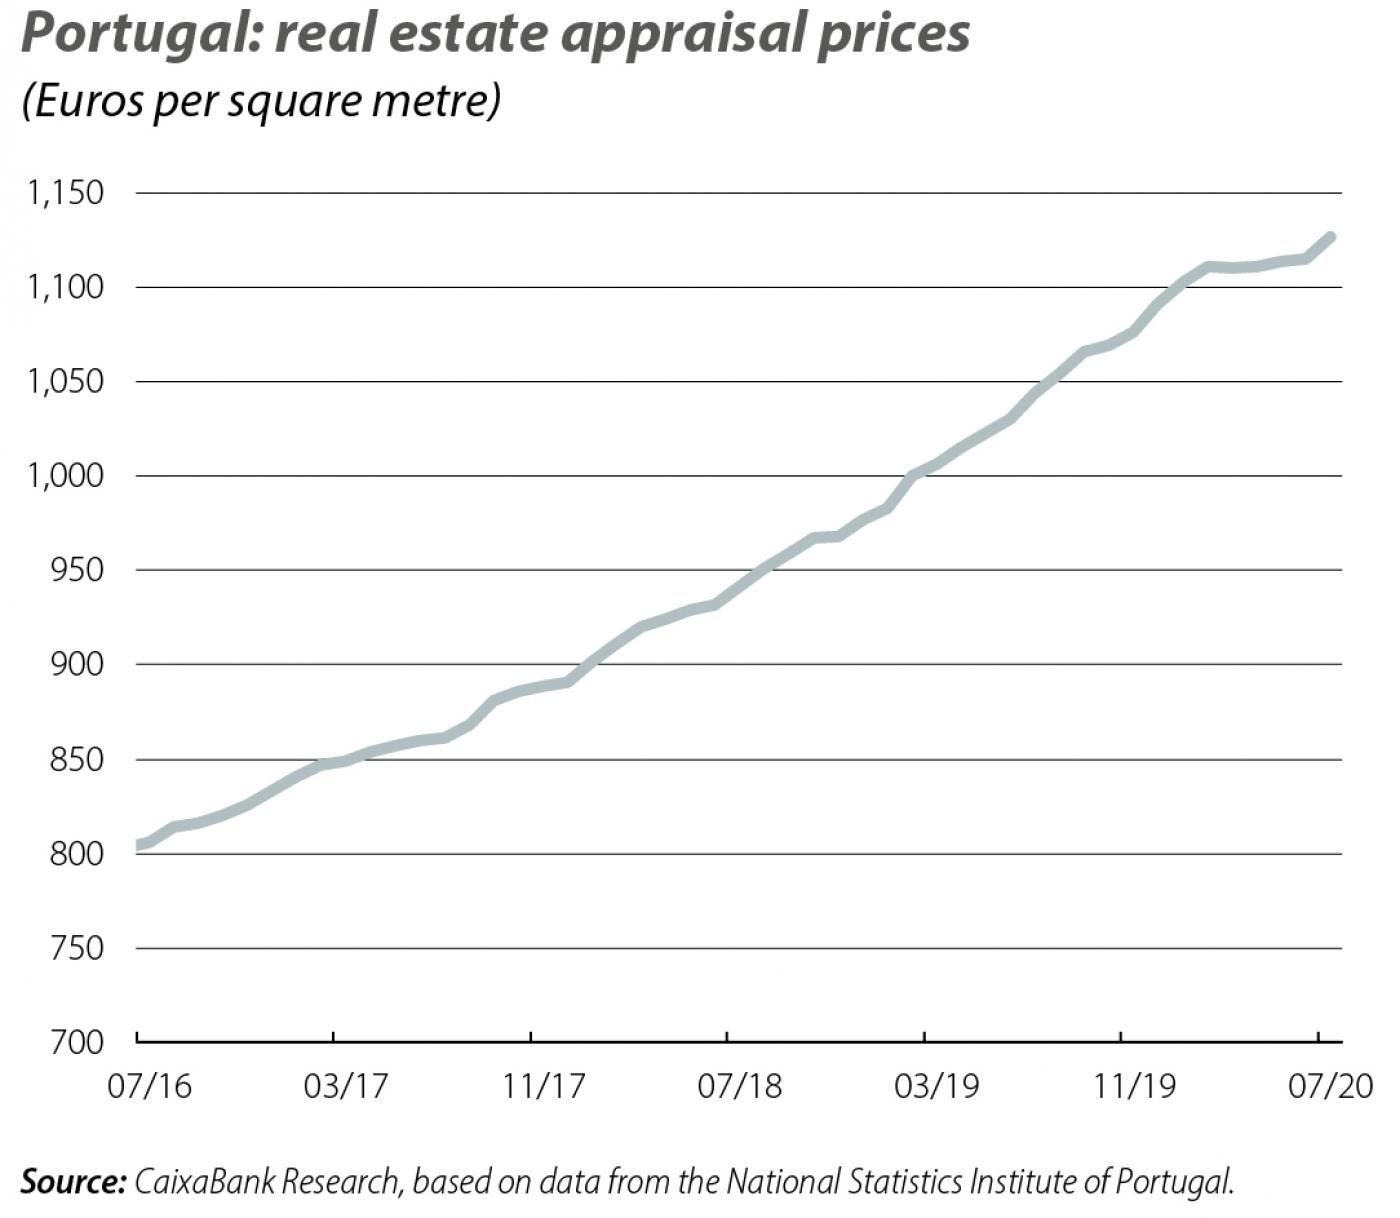 Portugal: real estate appraisal prices